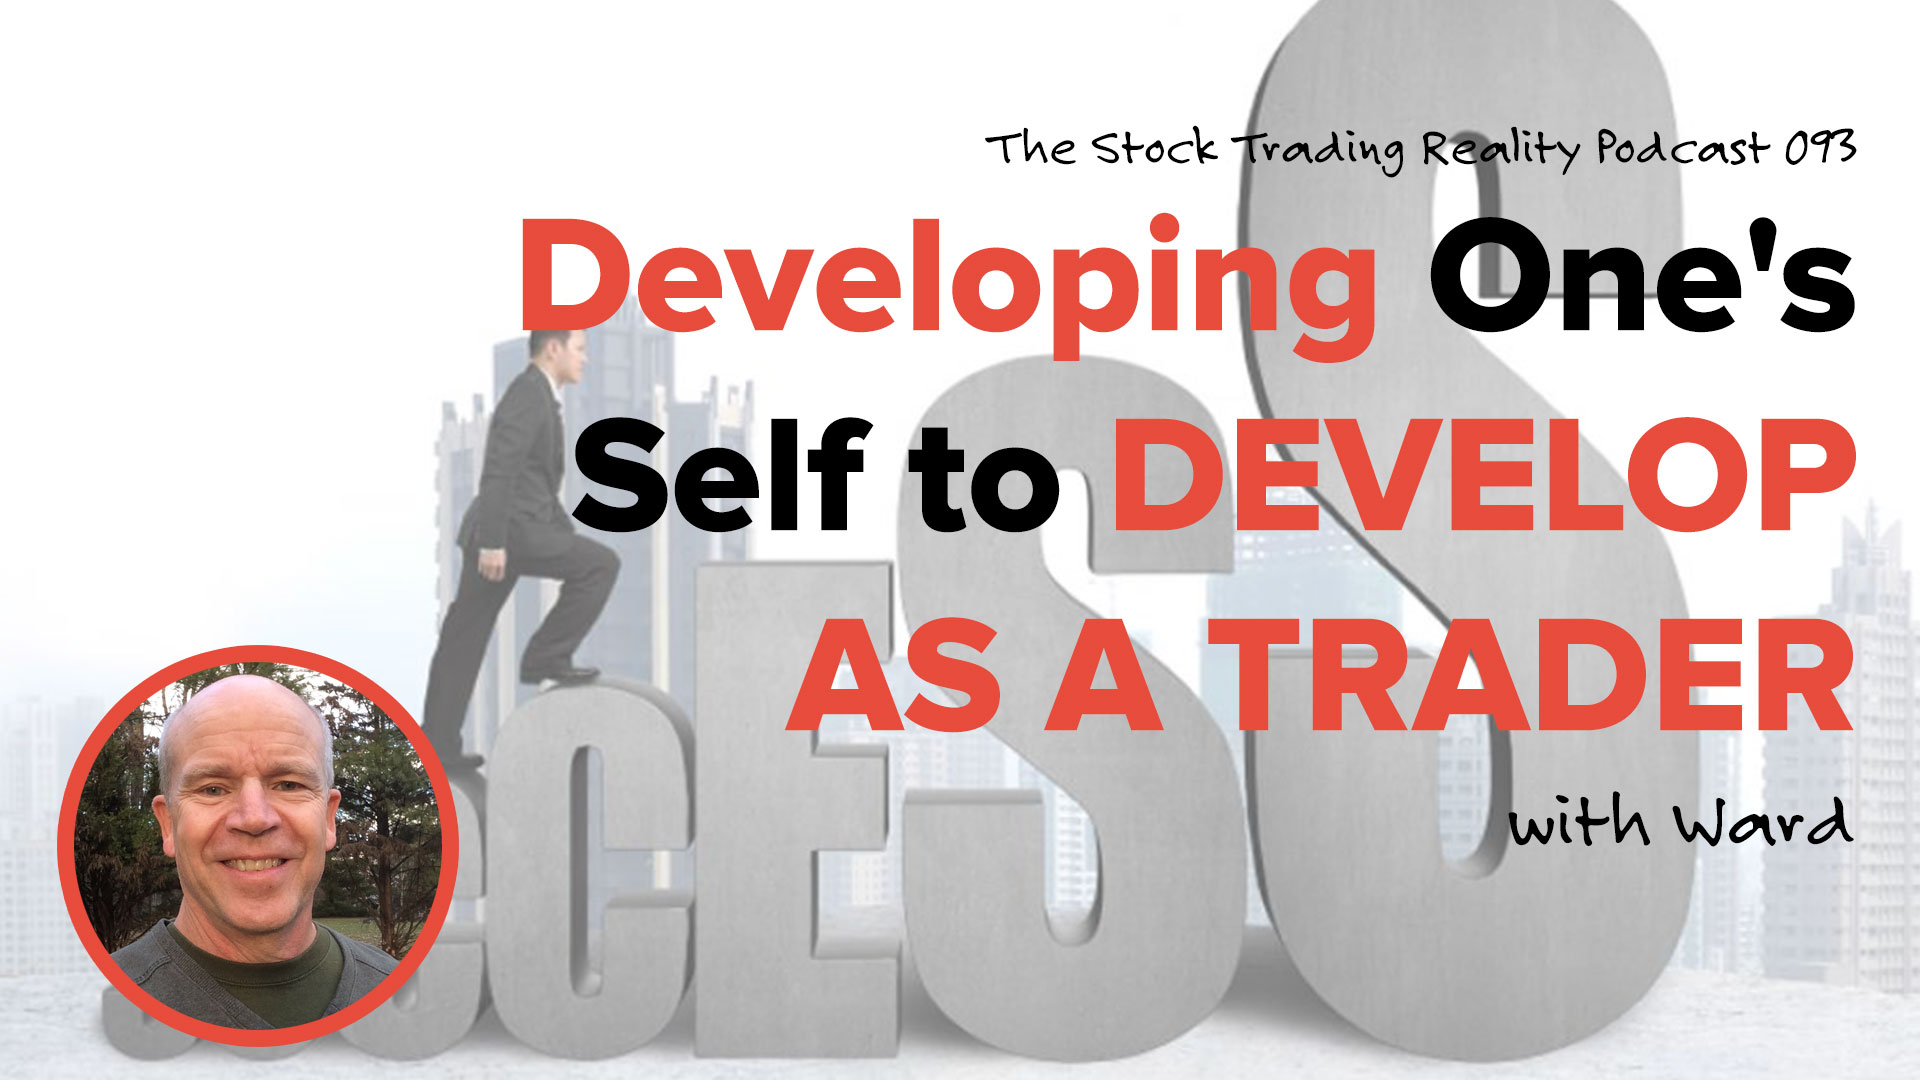 STR 093: Developing One's Self to Develop as a Trader